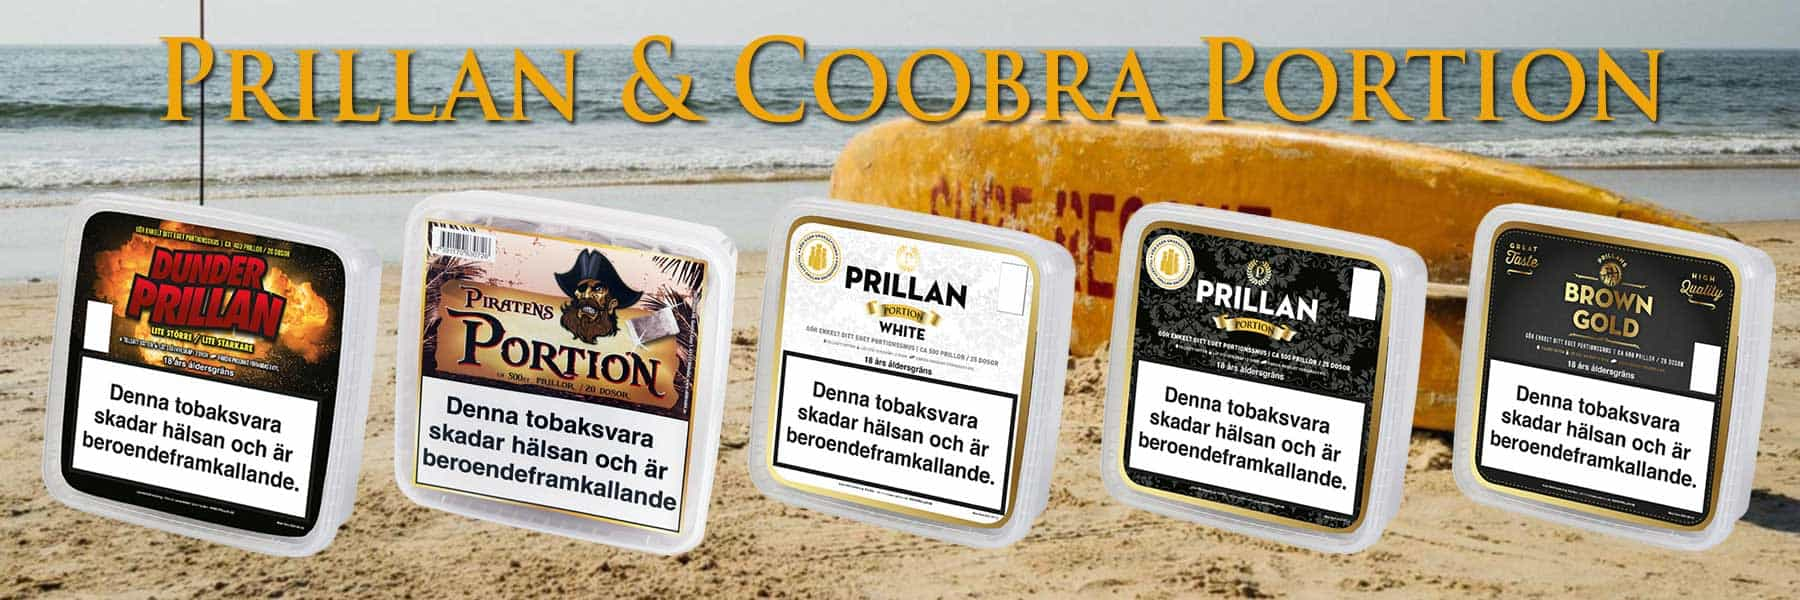 Prillan coobra portion